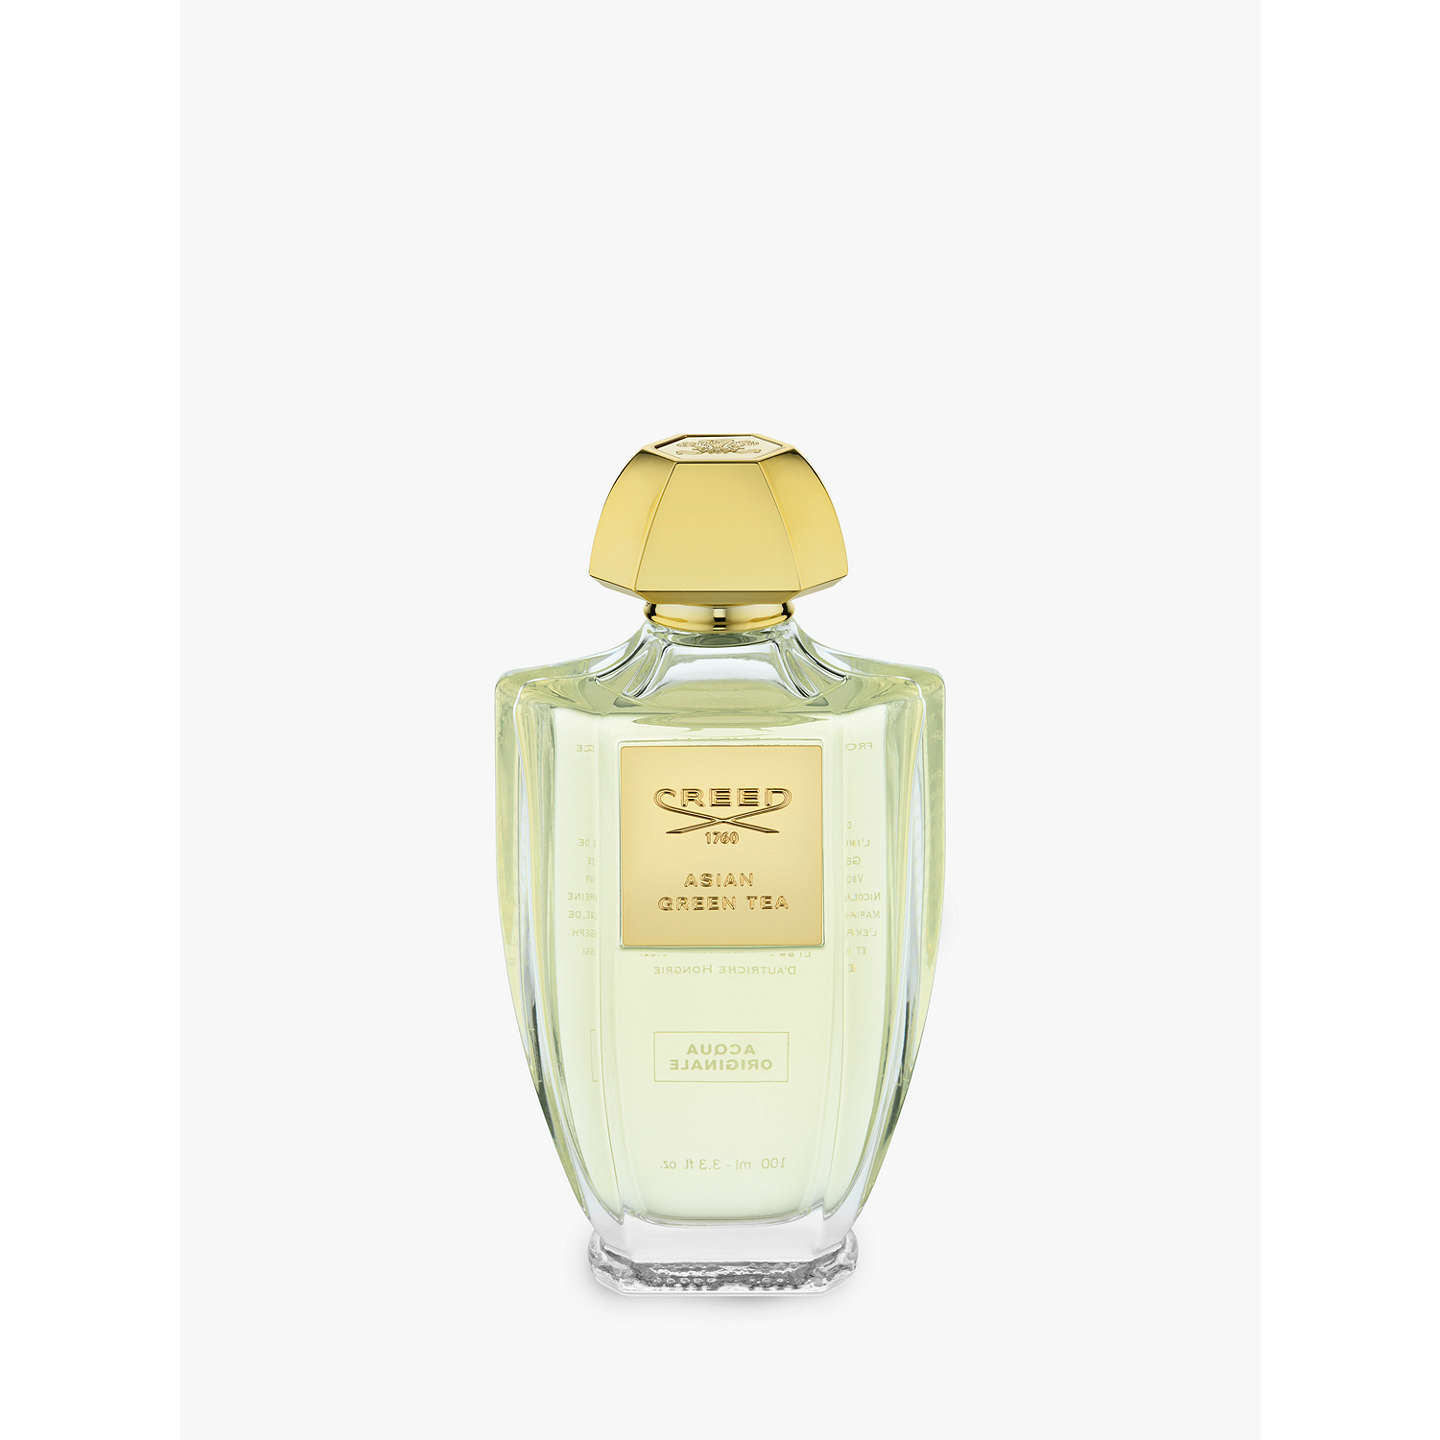 BuyCREED Acqua Originale Asian Green Tea Eau de Parfum, 100ml Online at johnlewis.com